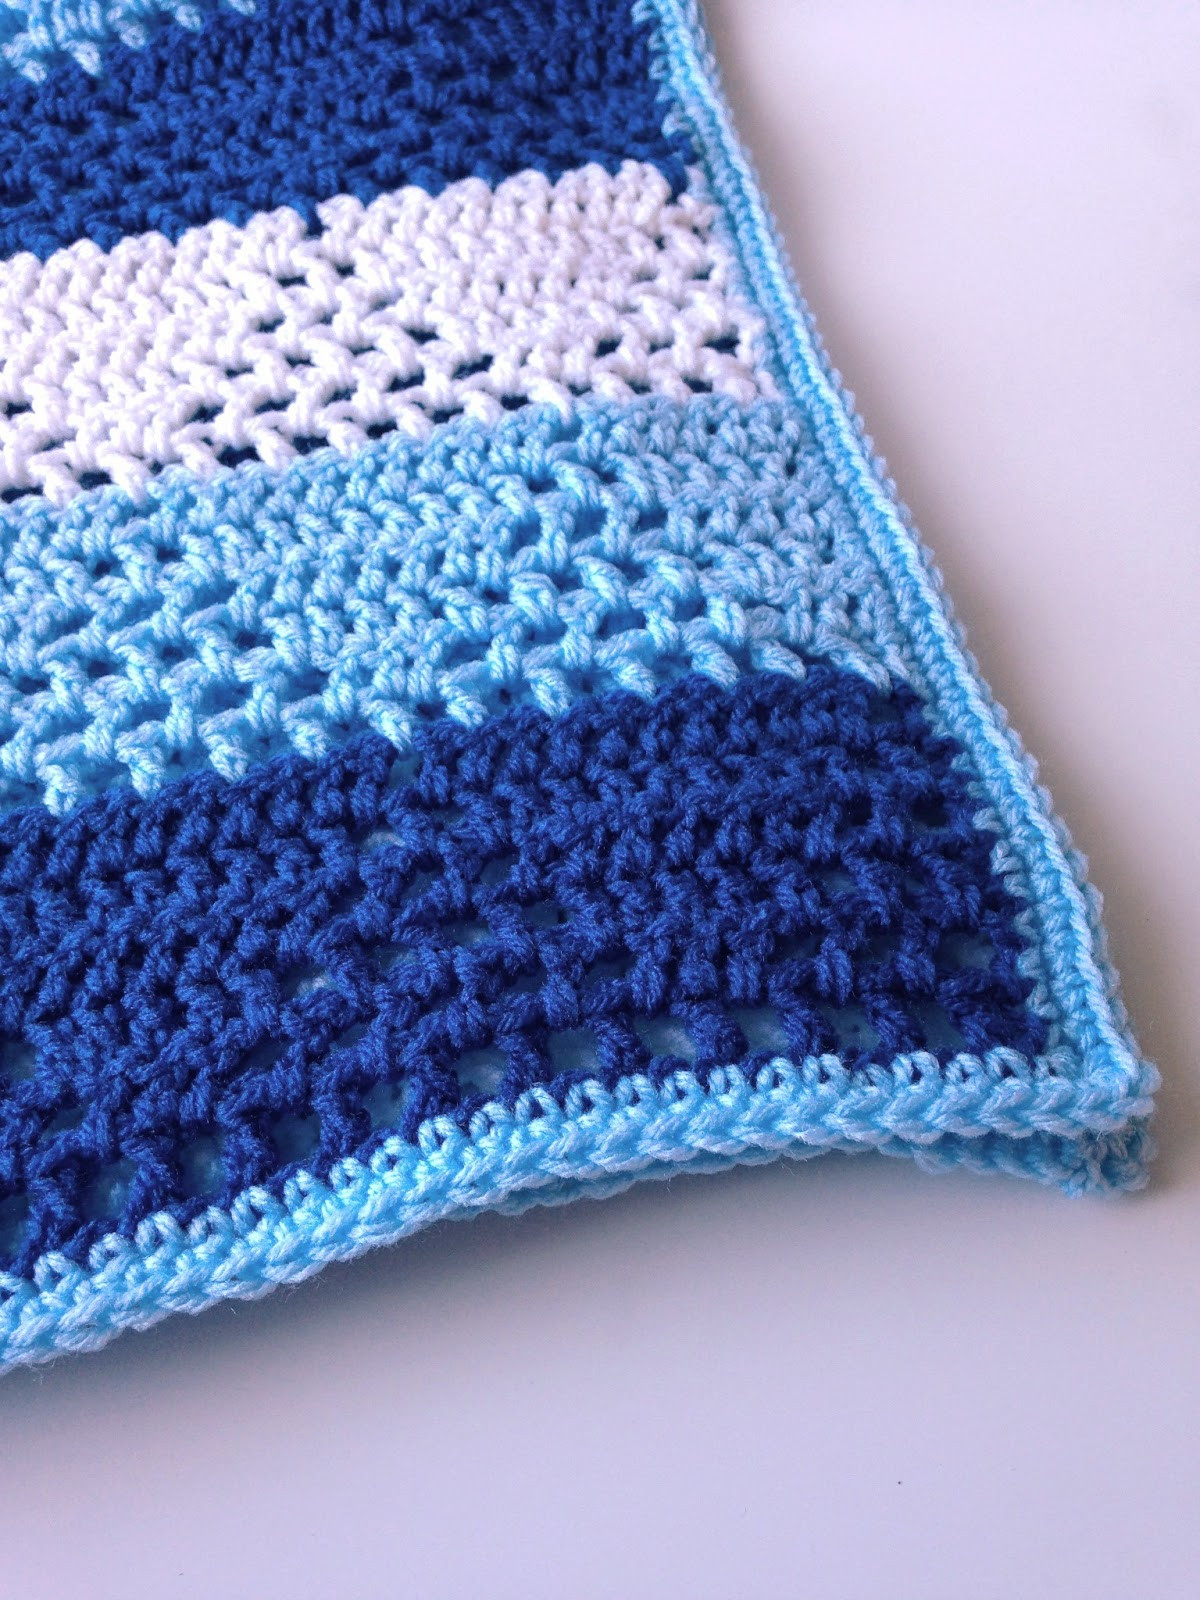 Baby Boy Crochet Blanket Patterns Elegant 5 Little Monsters Triangles & Stripes Baby Blanket Of Baby Boy Crochet Blanket Patterns New Free Baby Boy Crochet Blanket Patterns